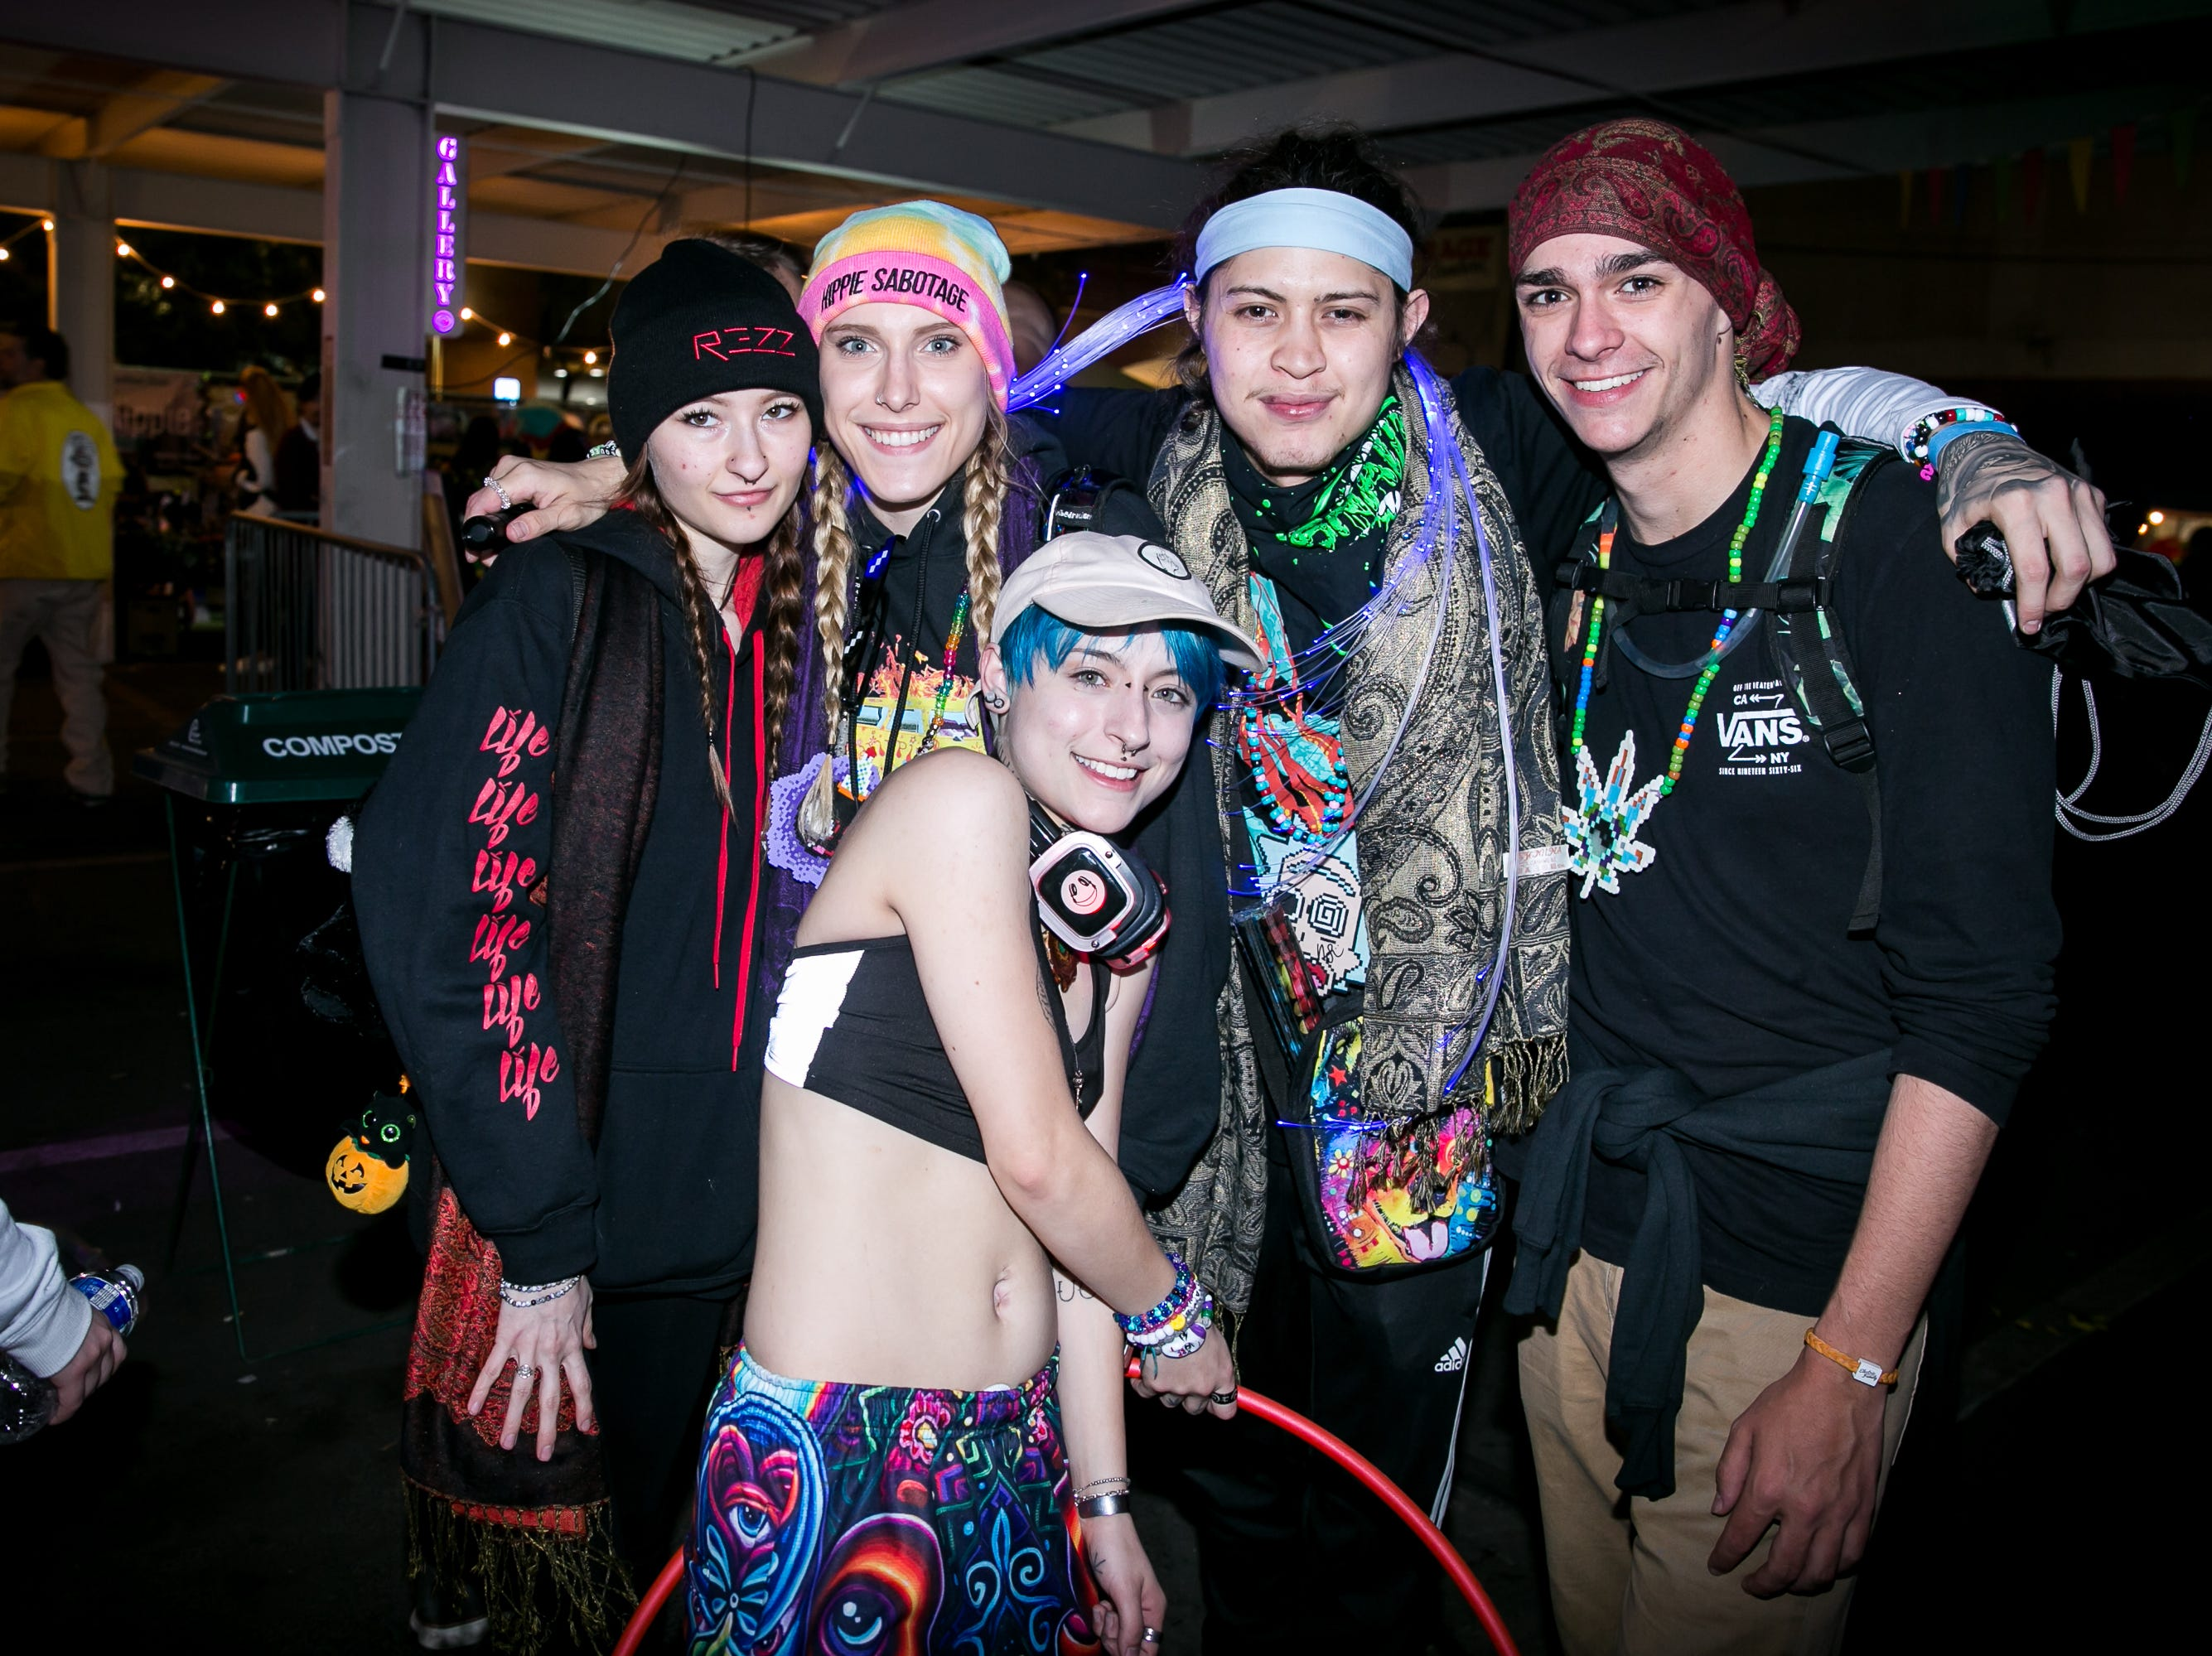 This group looked colorful at the Full Moon Festival at the Pressroom on March 23, 2019.